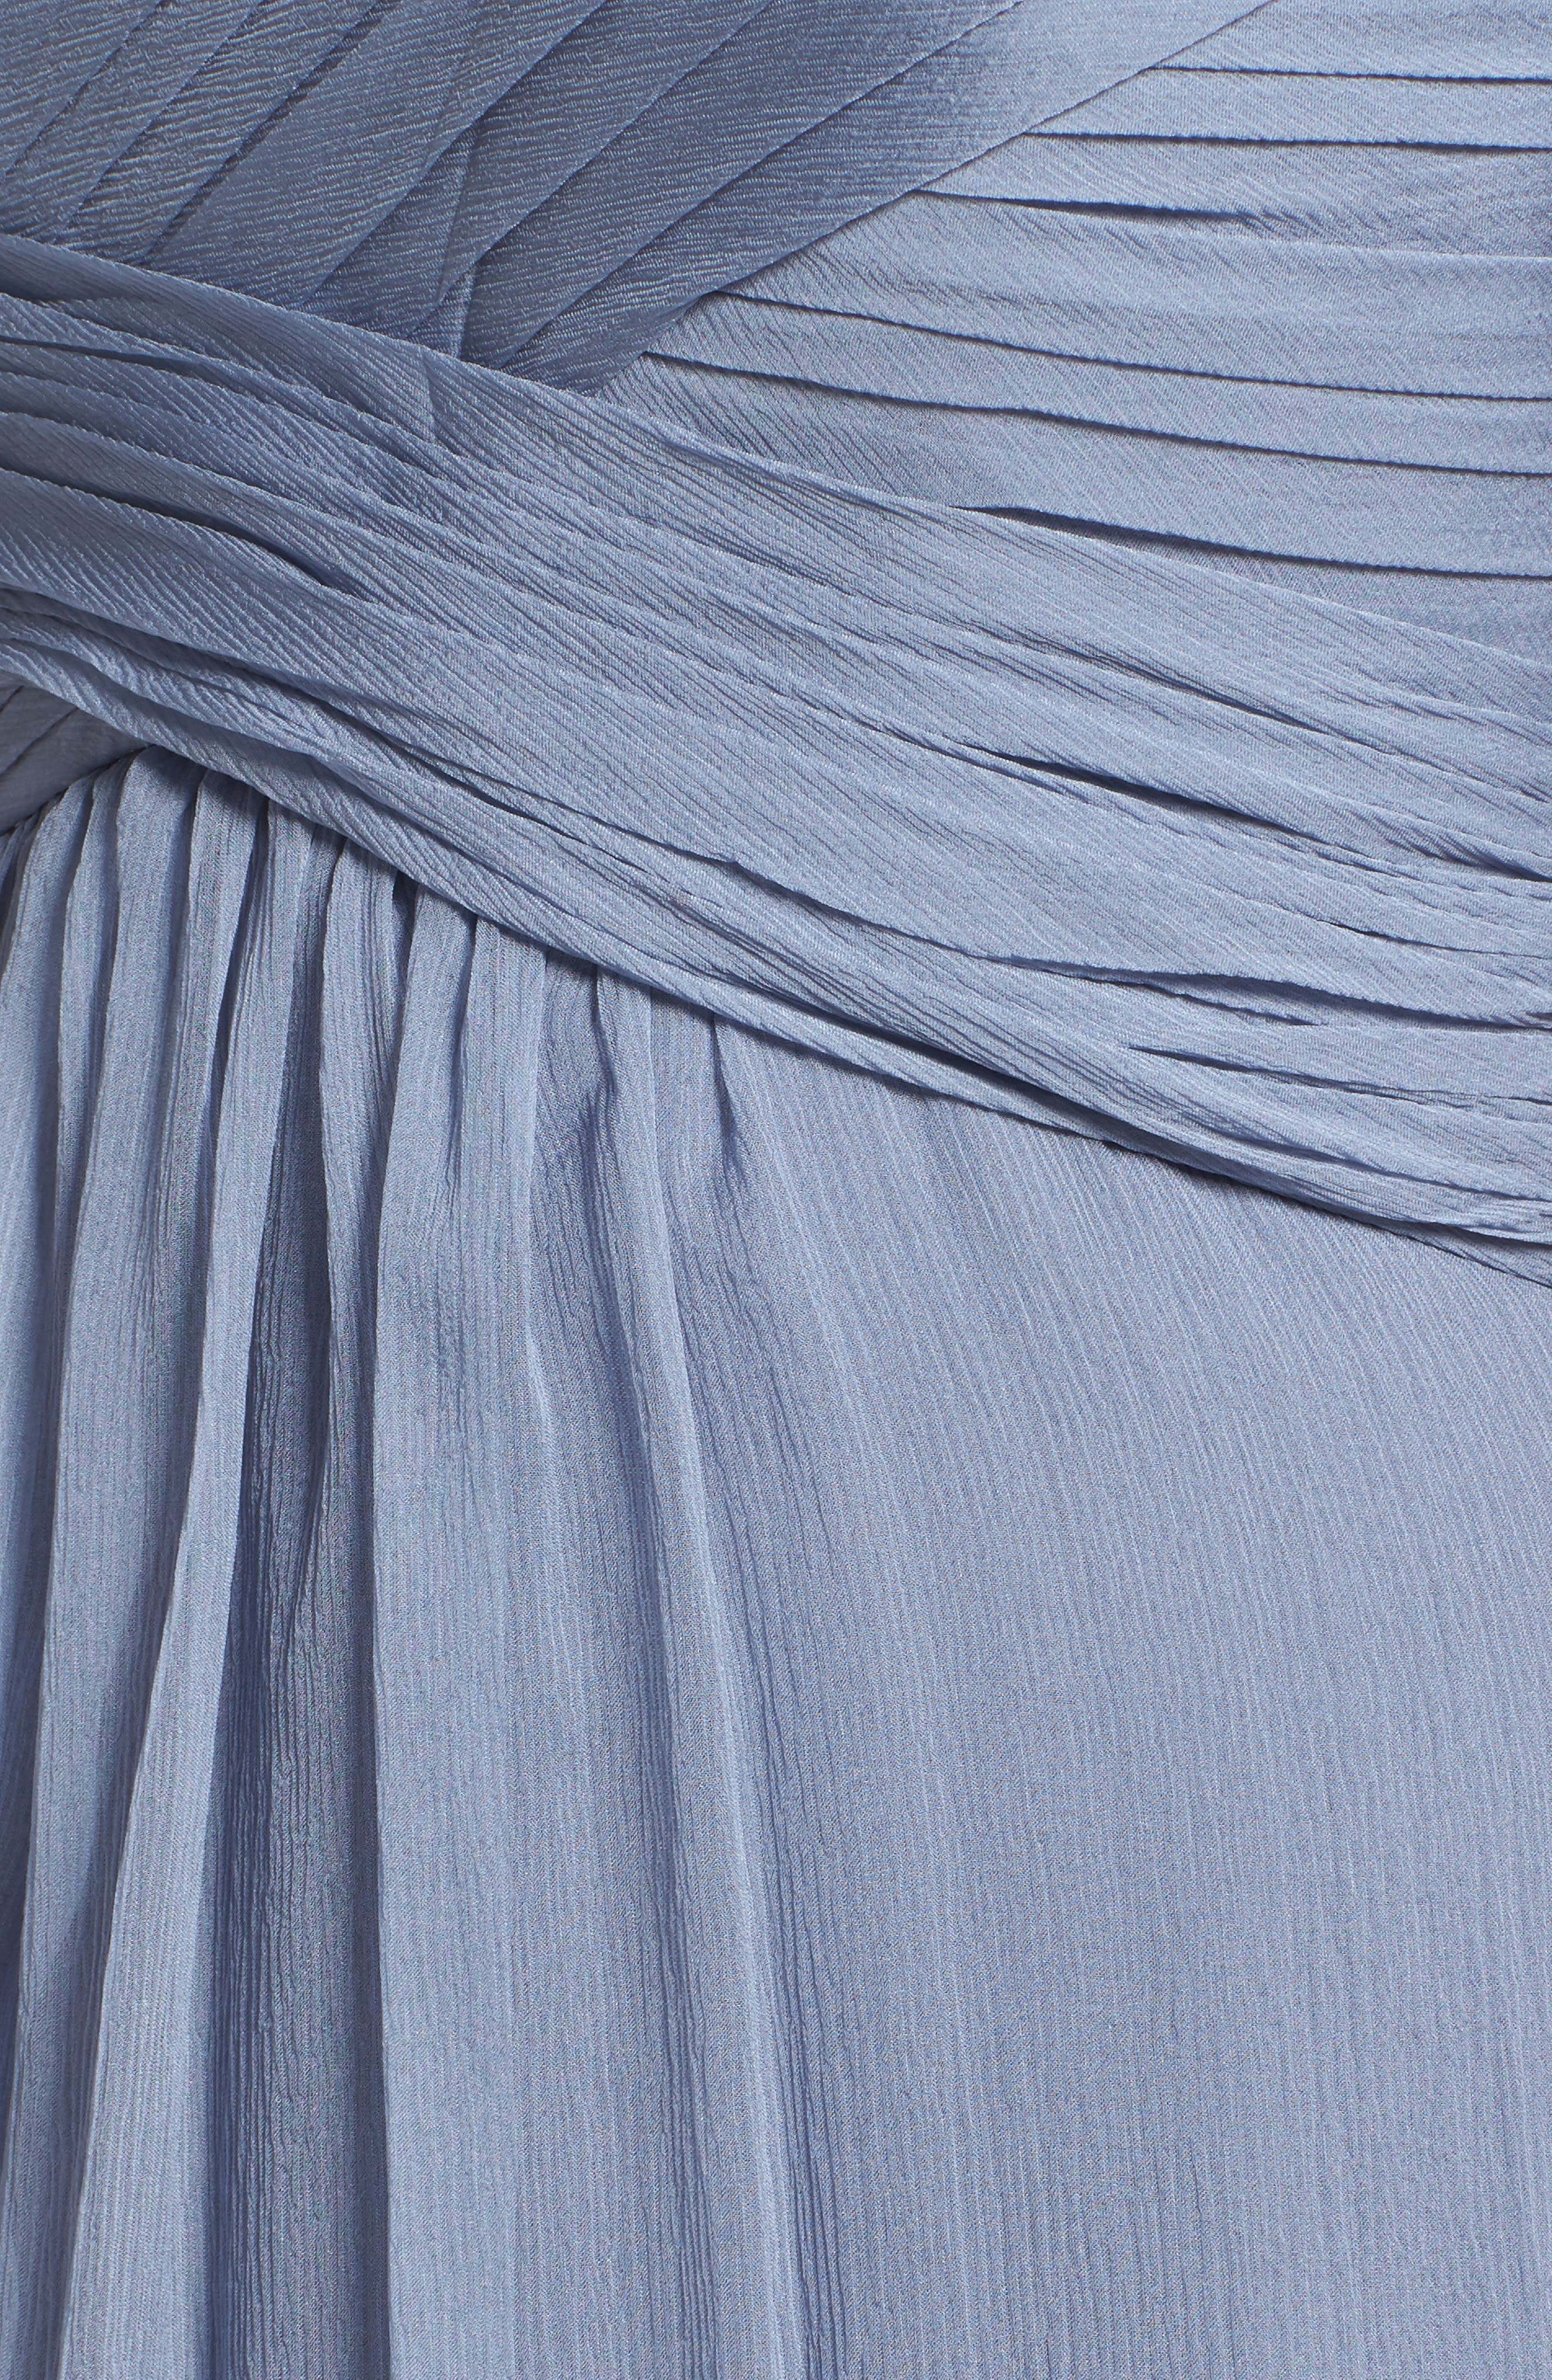 Convertible Crinkled Silk Chiffon Gown,                             Alternate thumbnail 27, color,